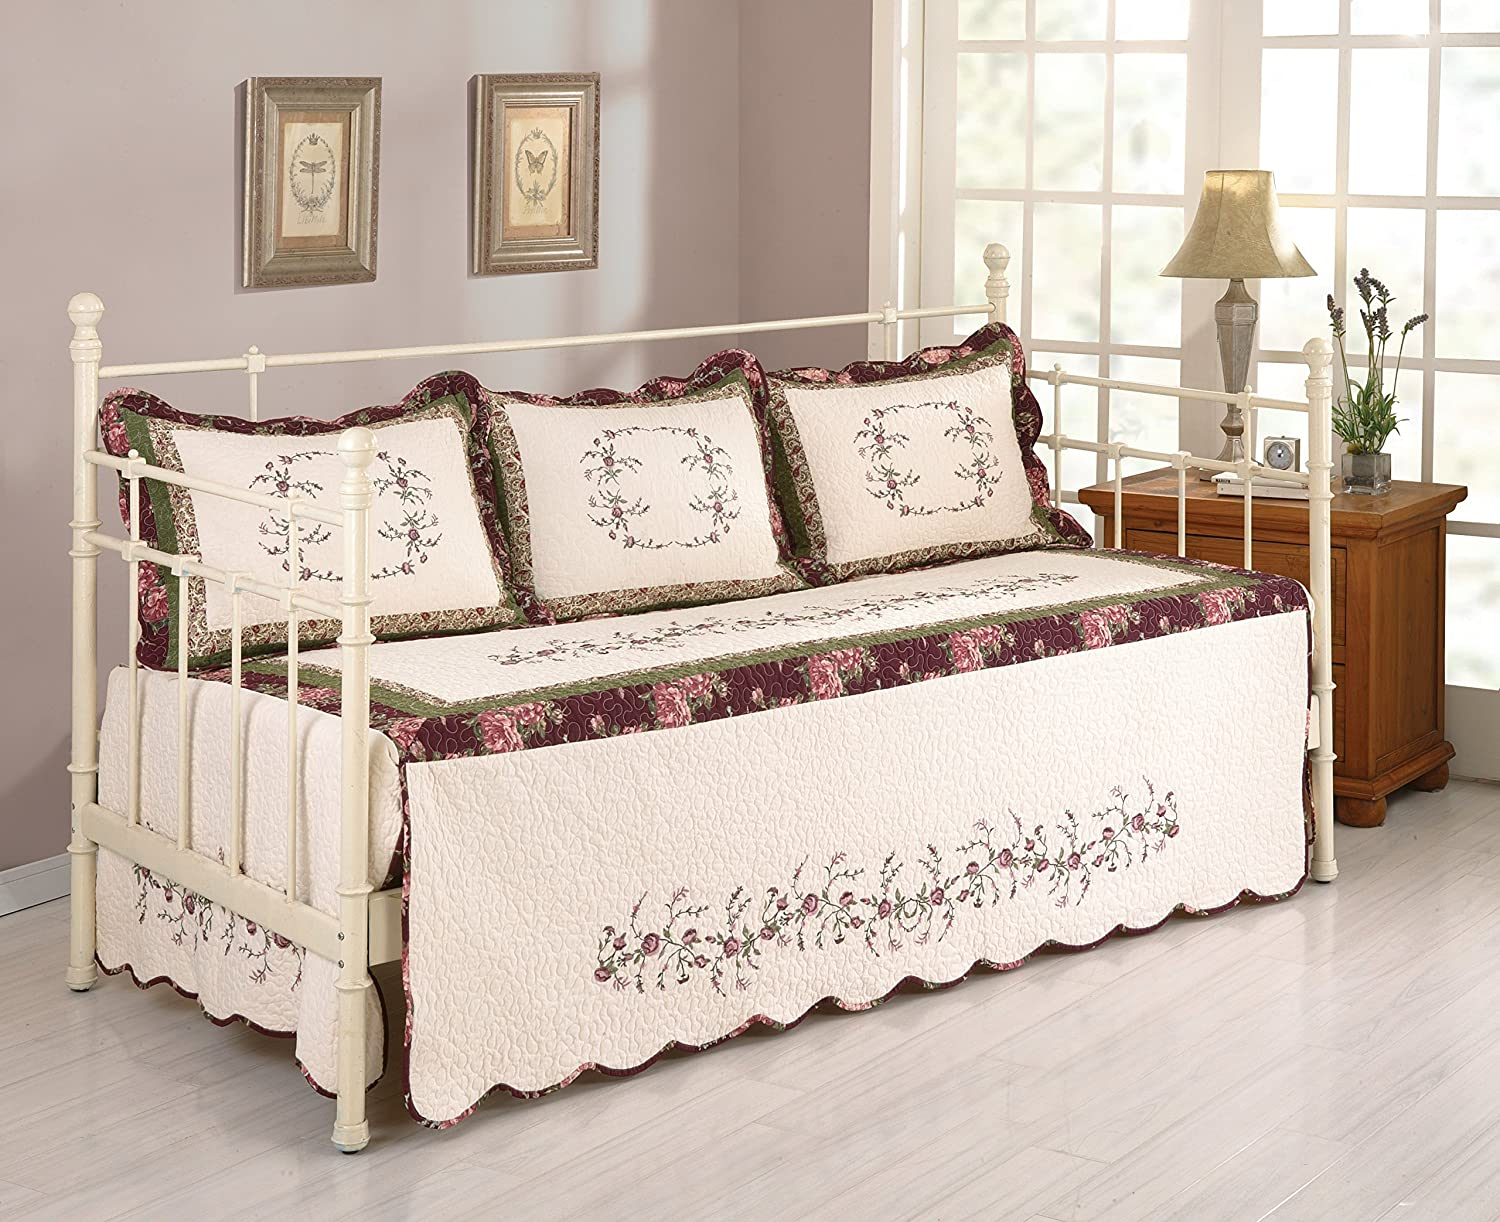 Daybeds That Work For Every Lifestyle Ease Bedding With